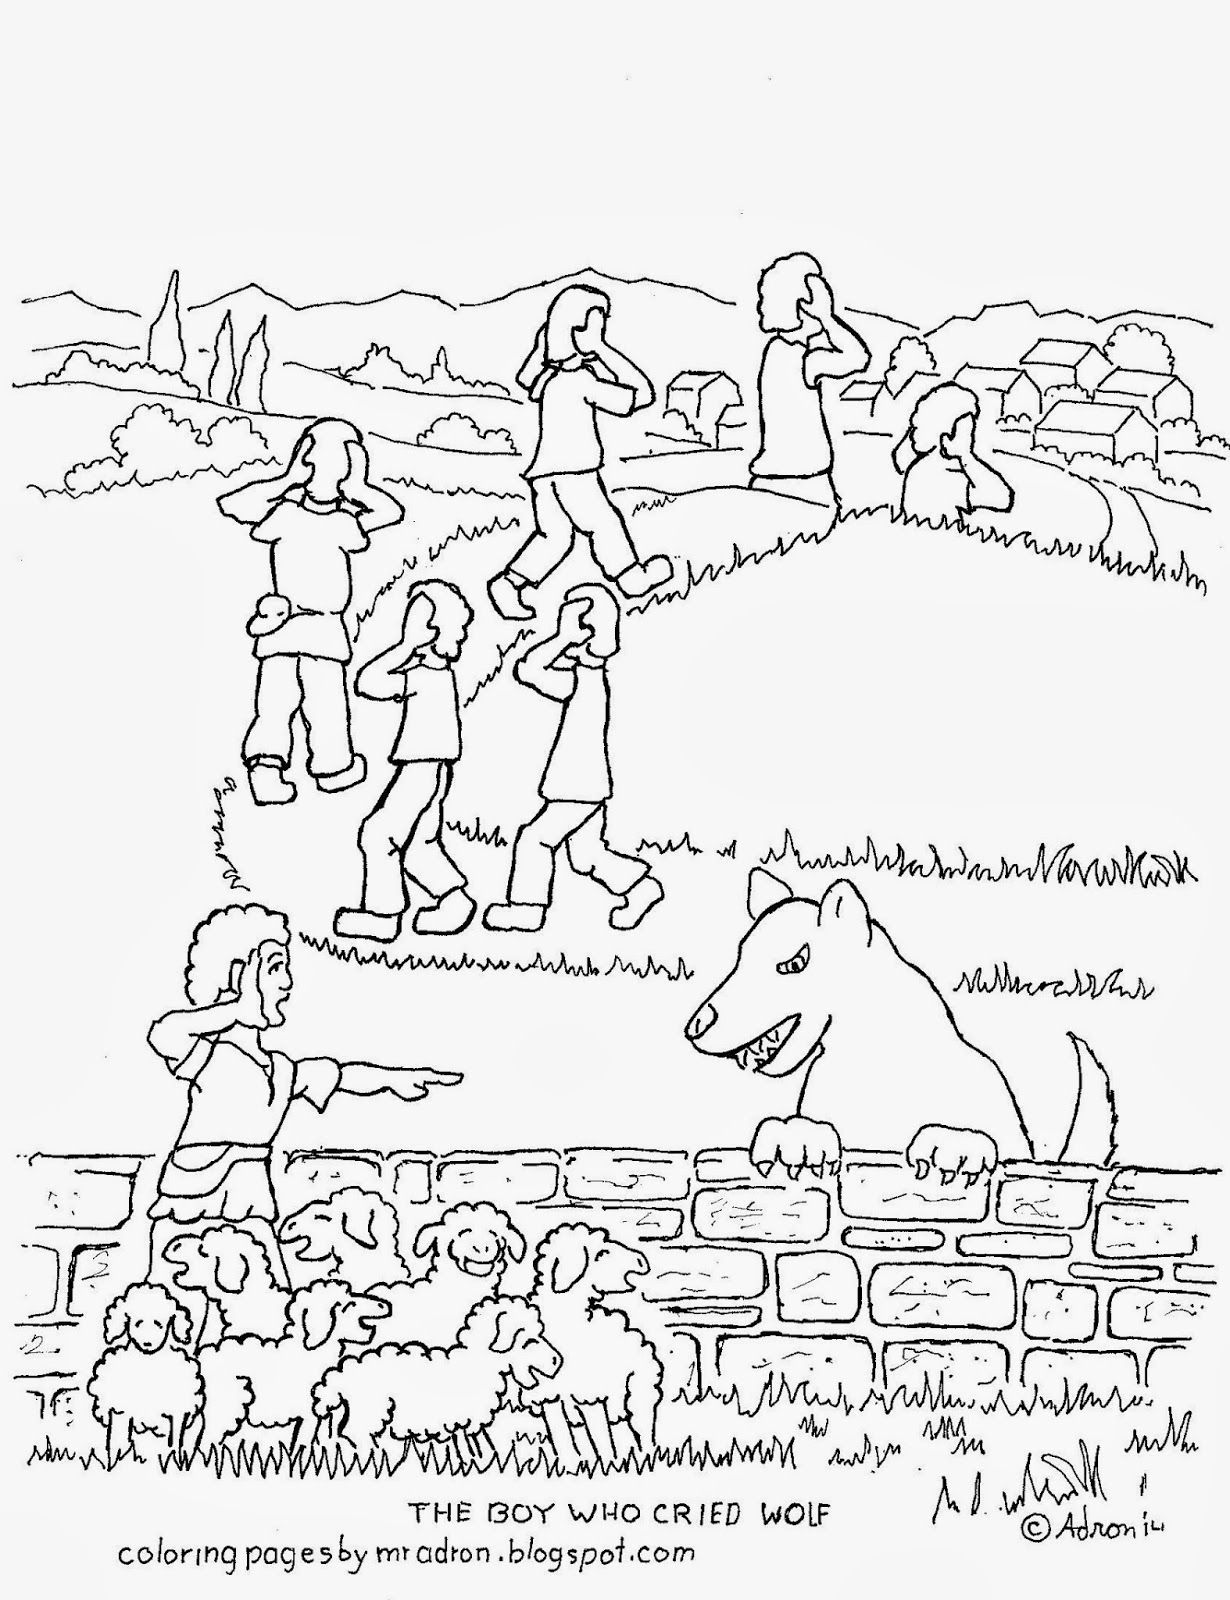 Coloring Picture Of The Boy Who Cried Wolf See More At My Blogger Coloringpagesbymradronblogspot